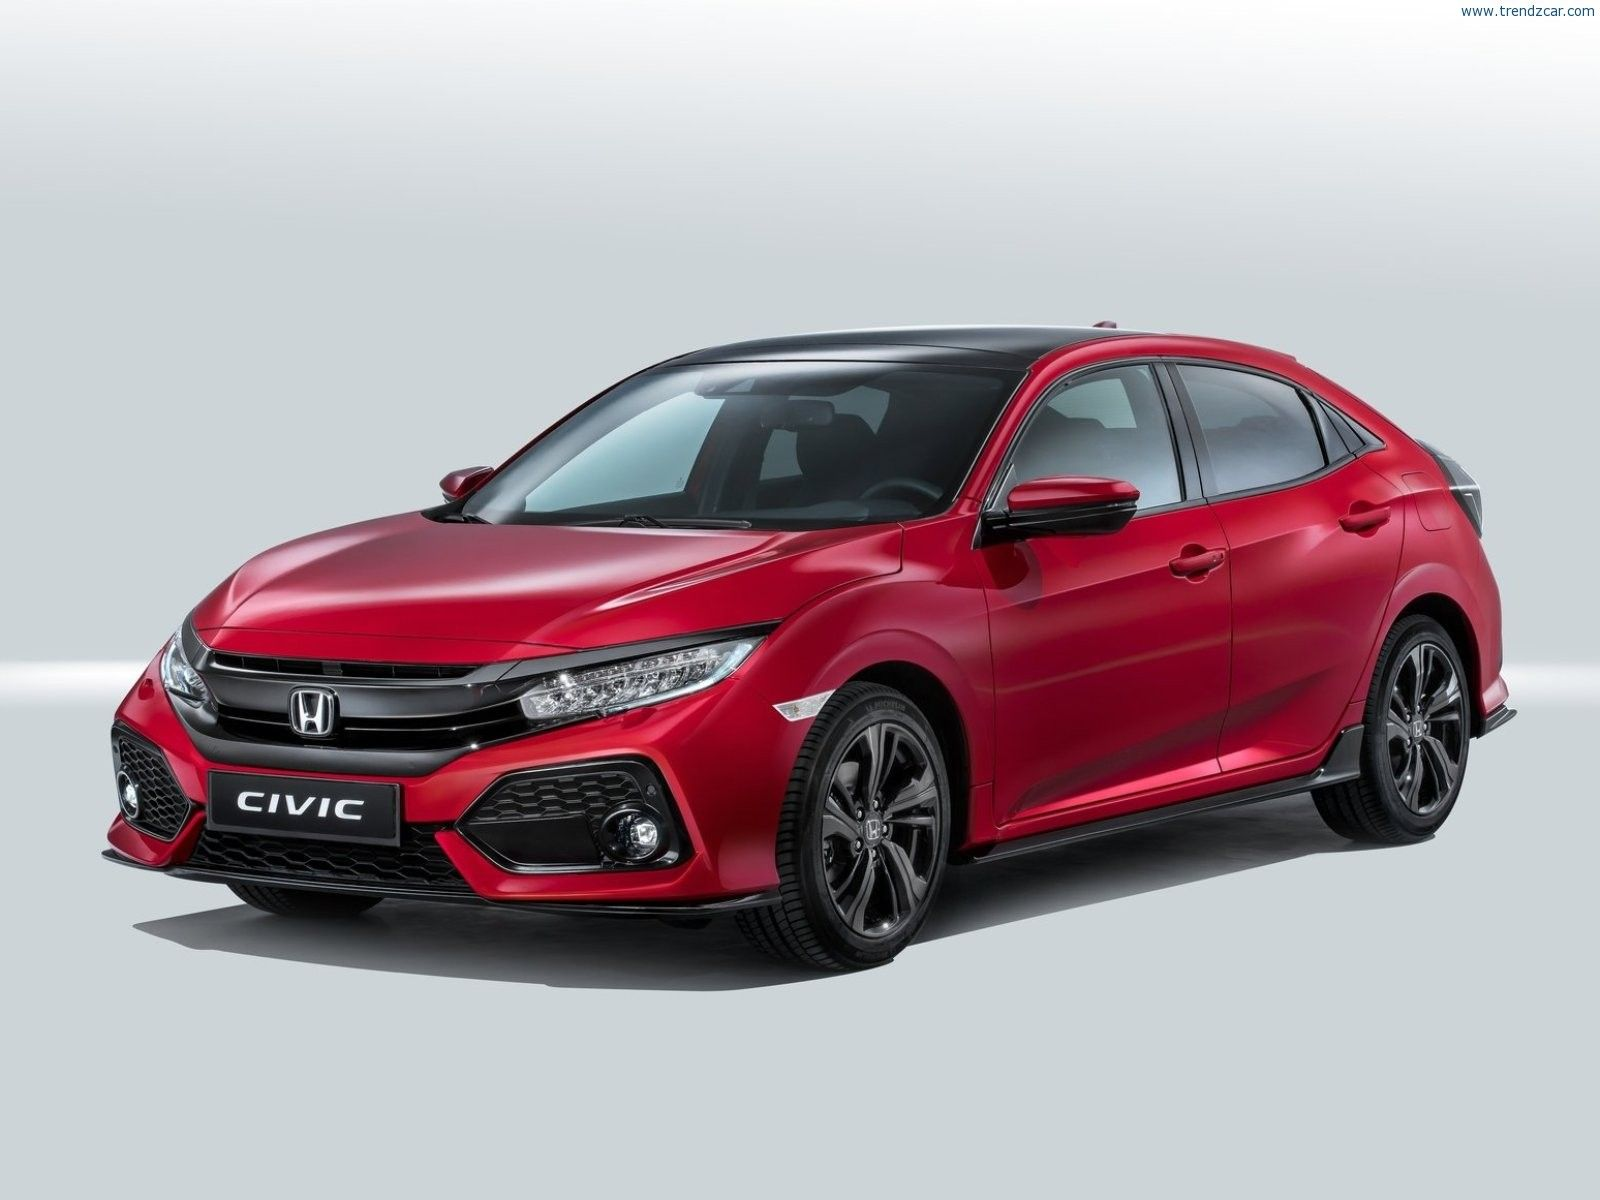 2017 Honda Civic (EU) Honda civic hatchback, Honda civic